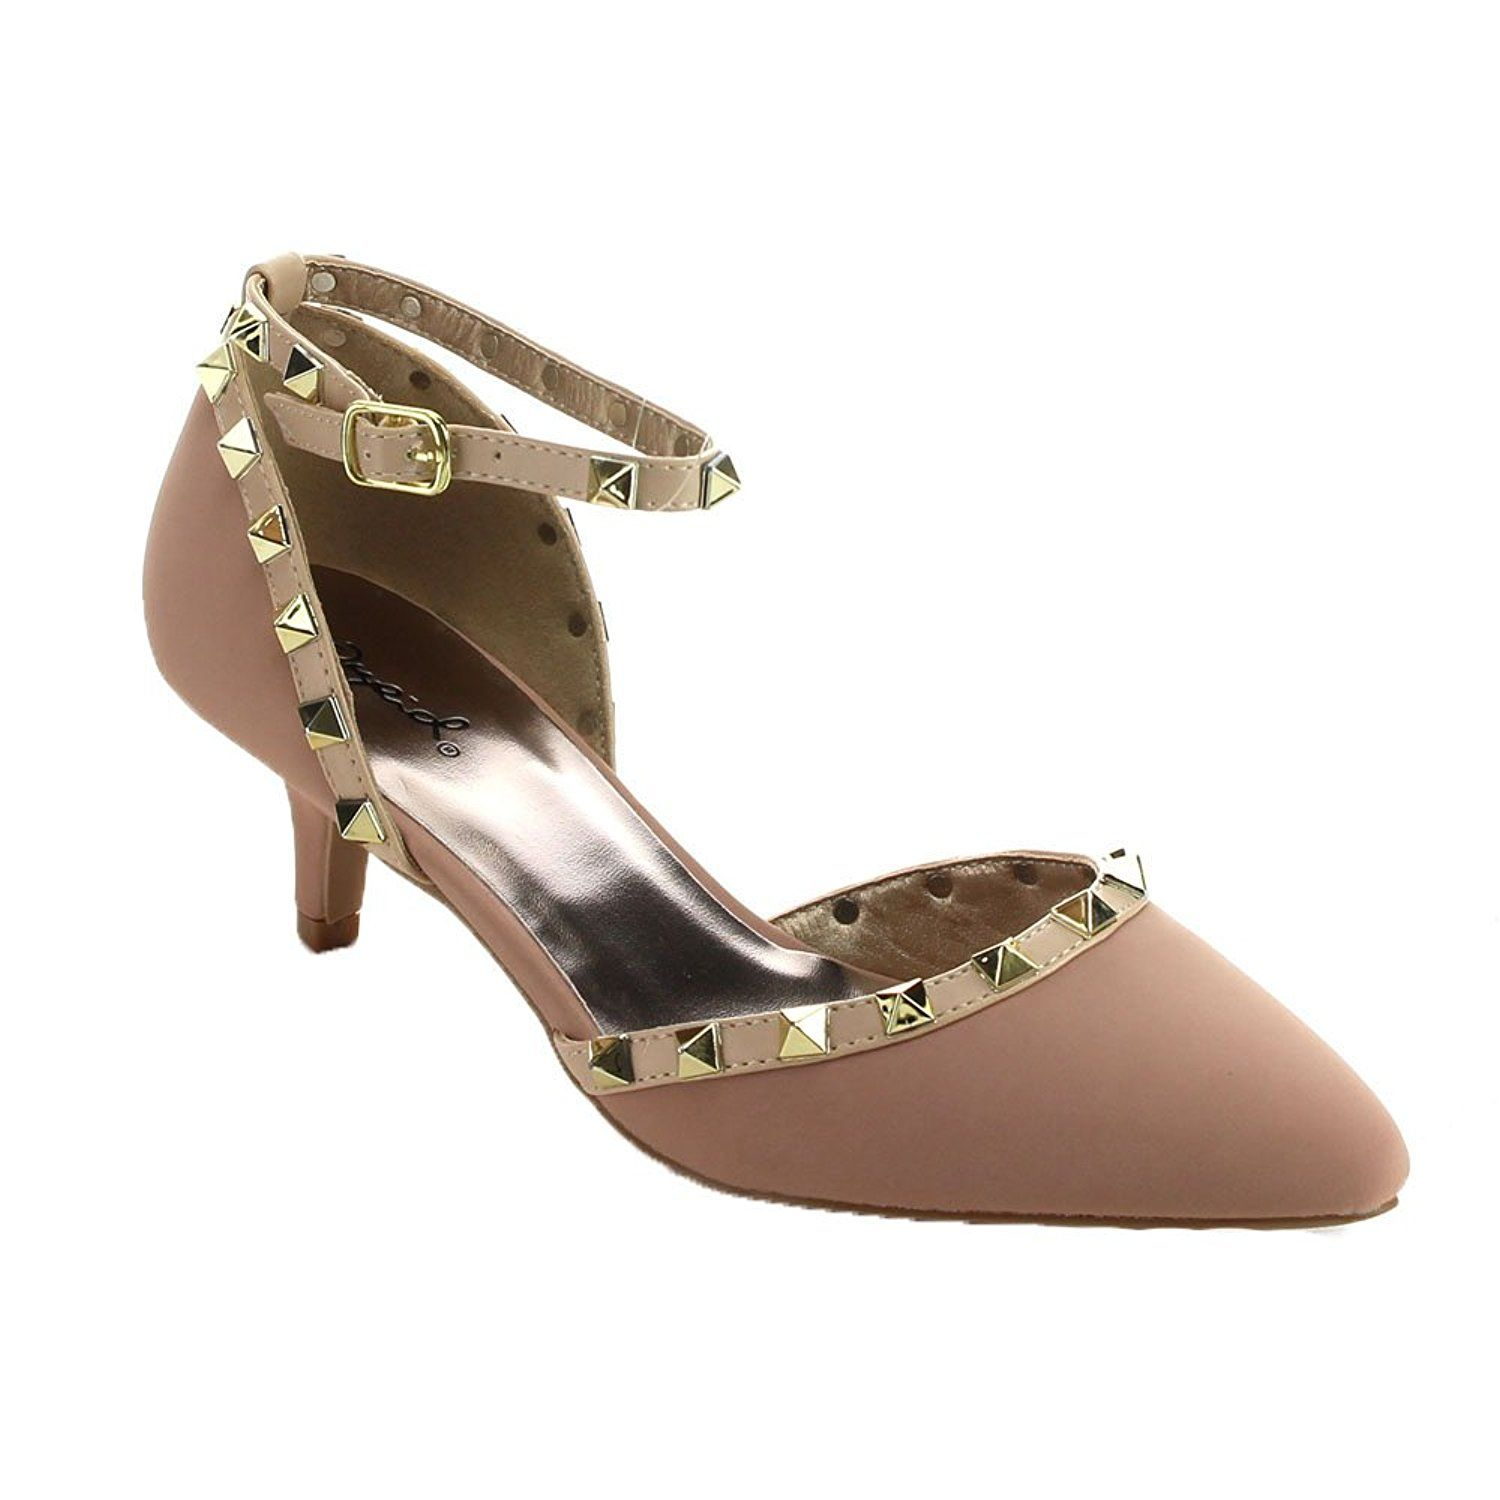 7be1cd4b841 QUPID PRANCE-12 Women s Studded Pointy Toe Kitten Heel Ankle Strap Dress  Pumps -- You can get more details here   Lace up sandals